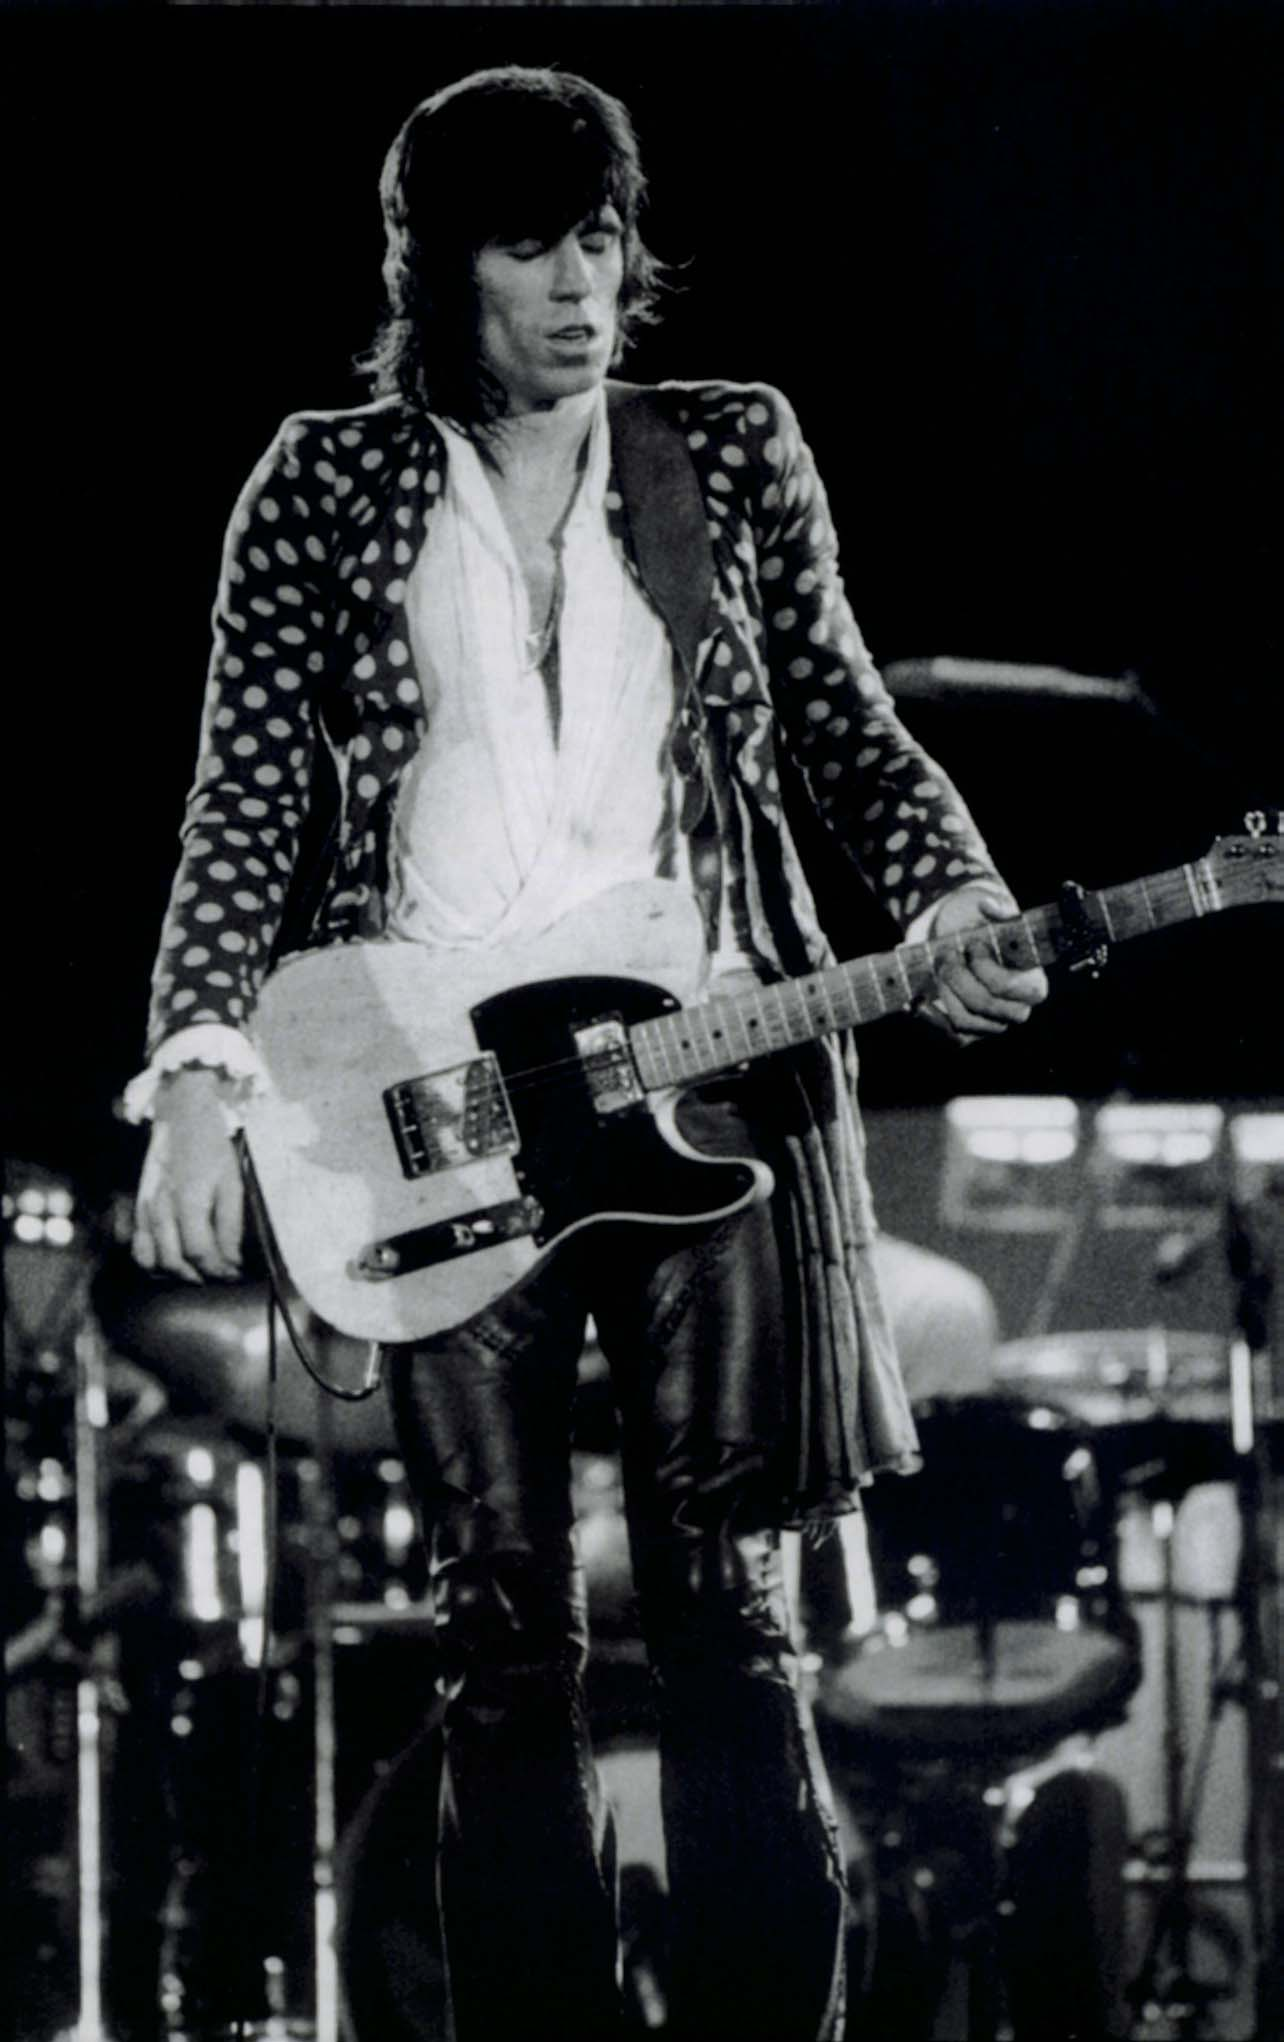 Keith Richards Was Wearing Pirate Shirts Way Before Johnny